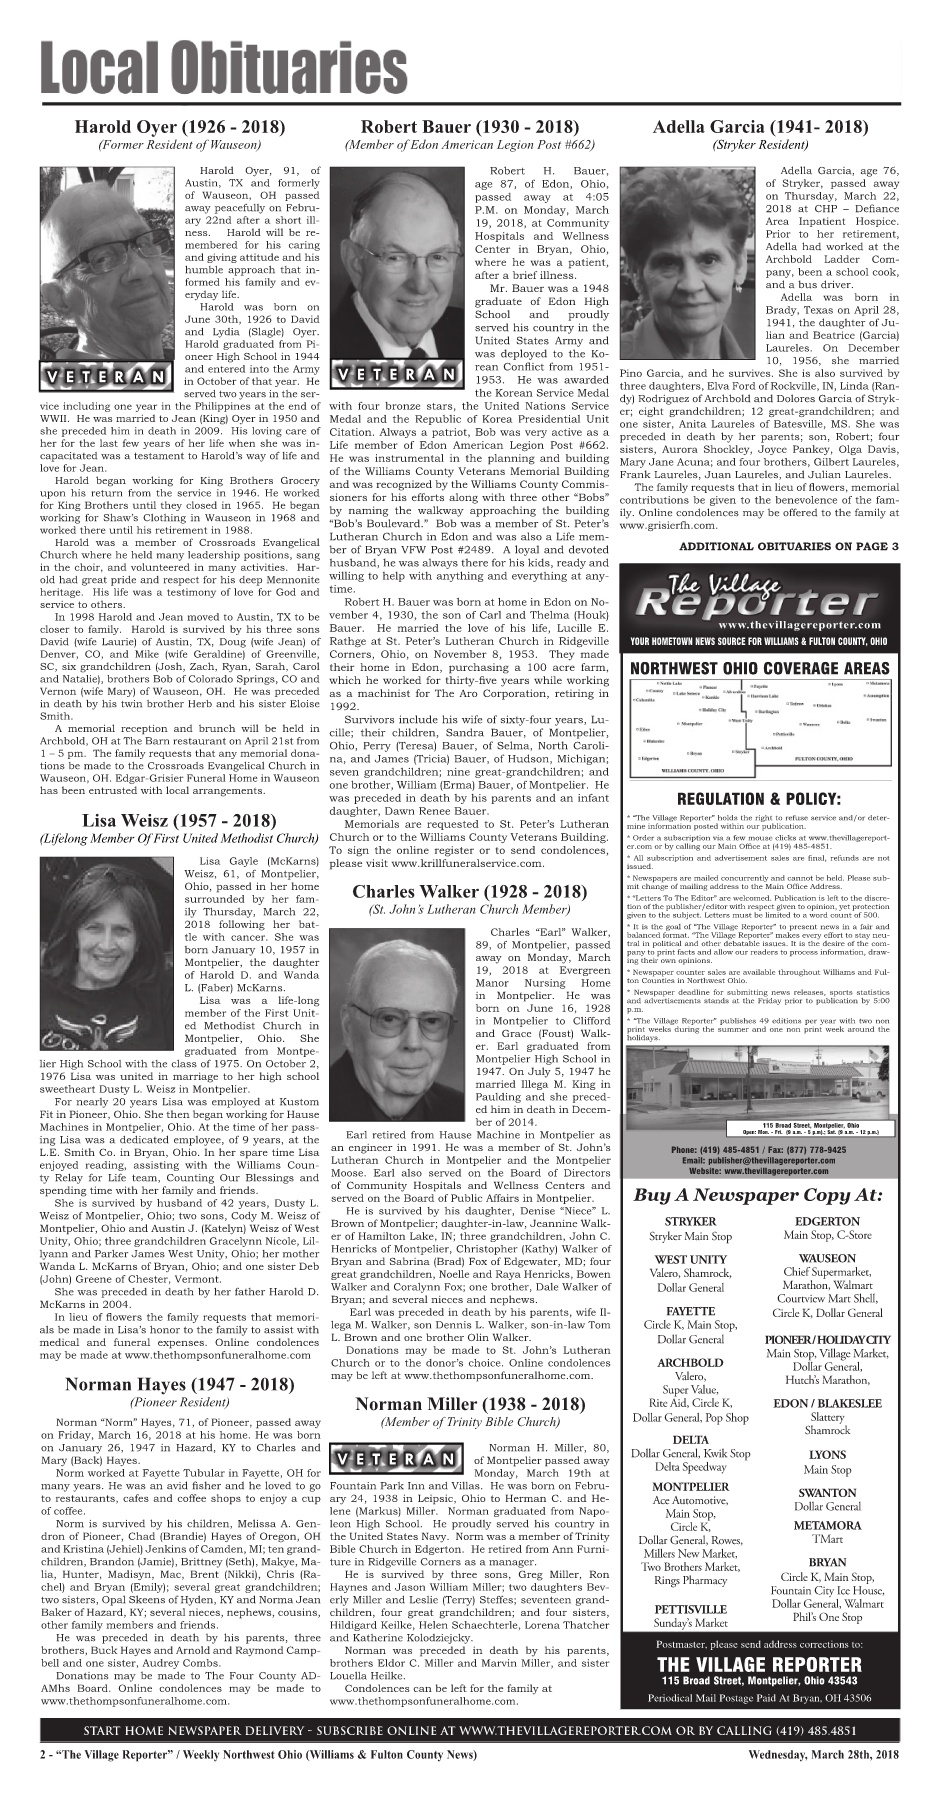 The Village Reporter - March 28th, 2018 Pages 1 - 42 - Text Version